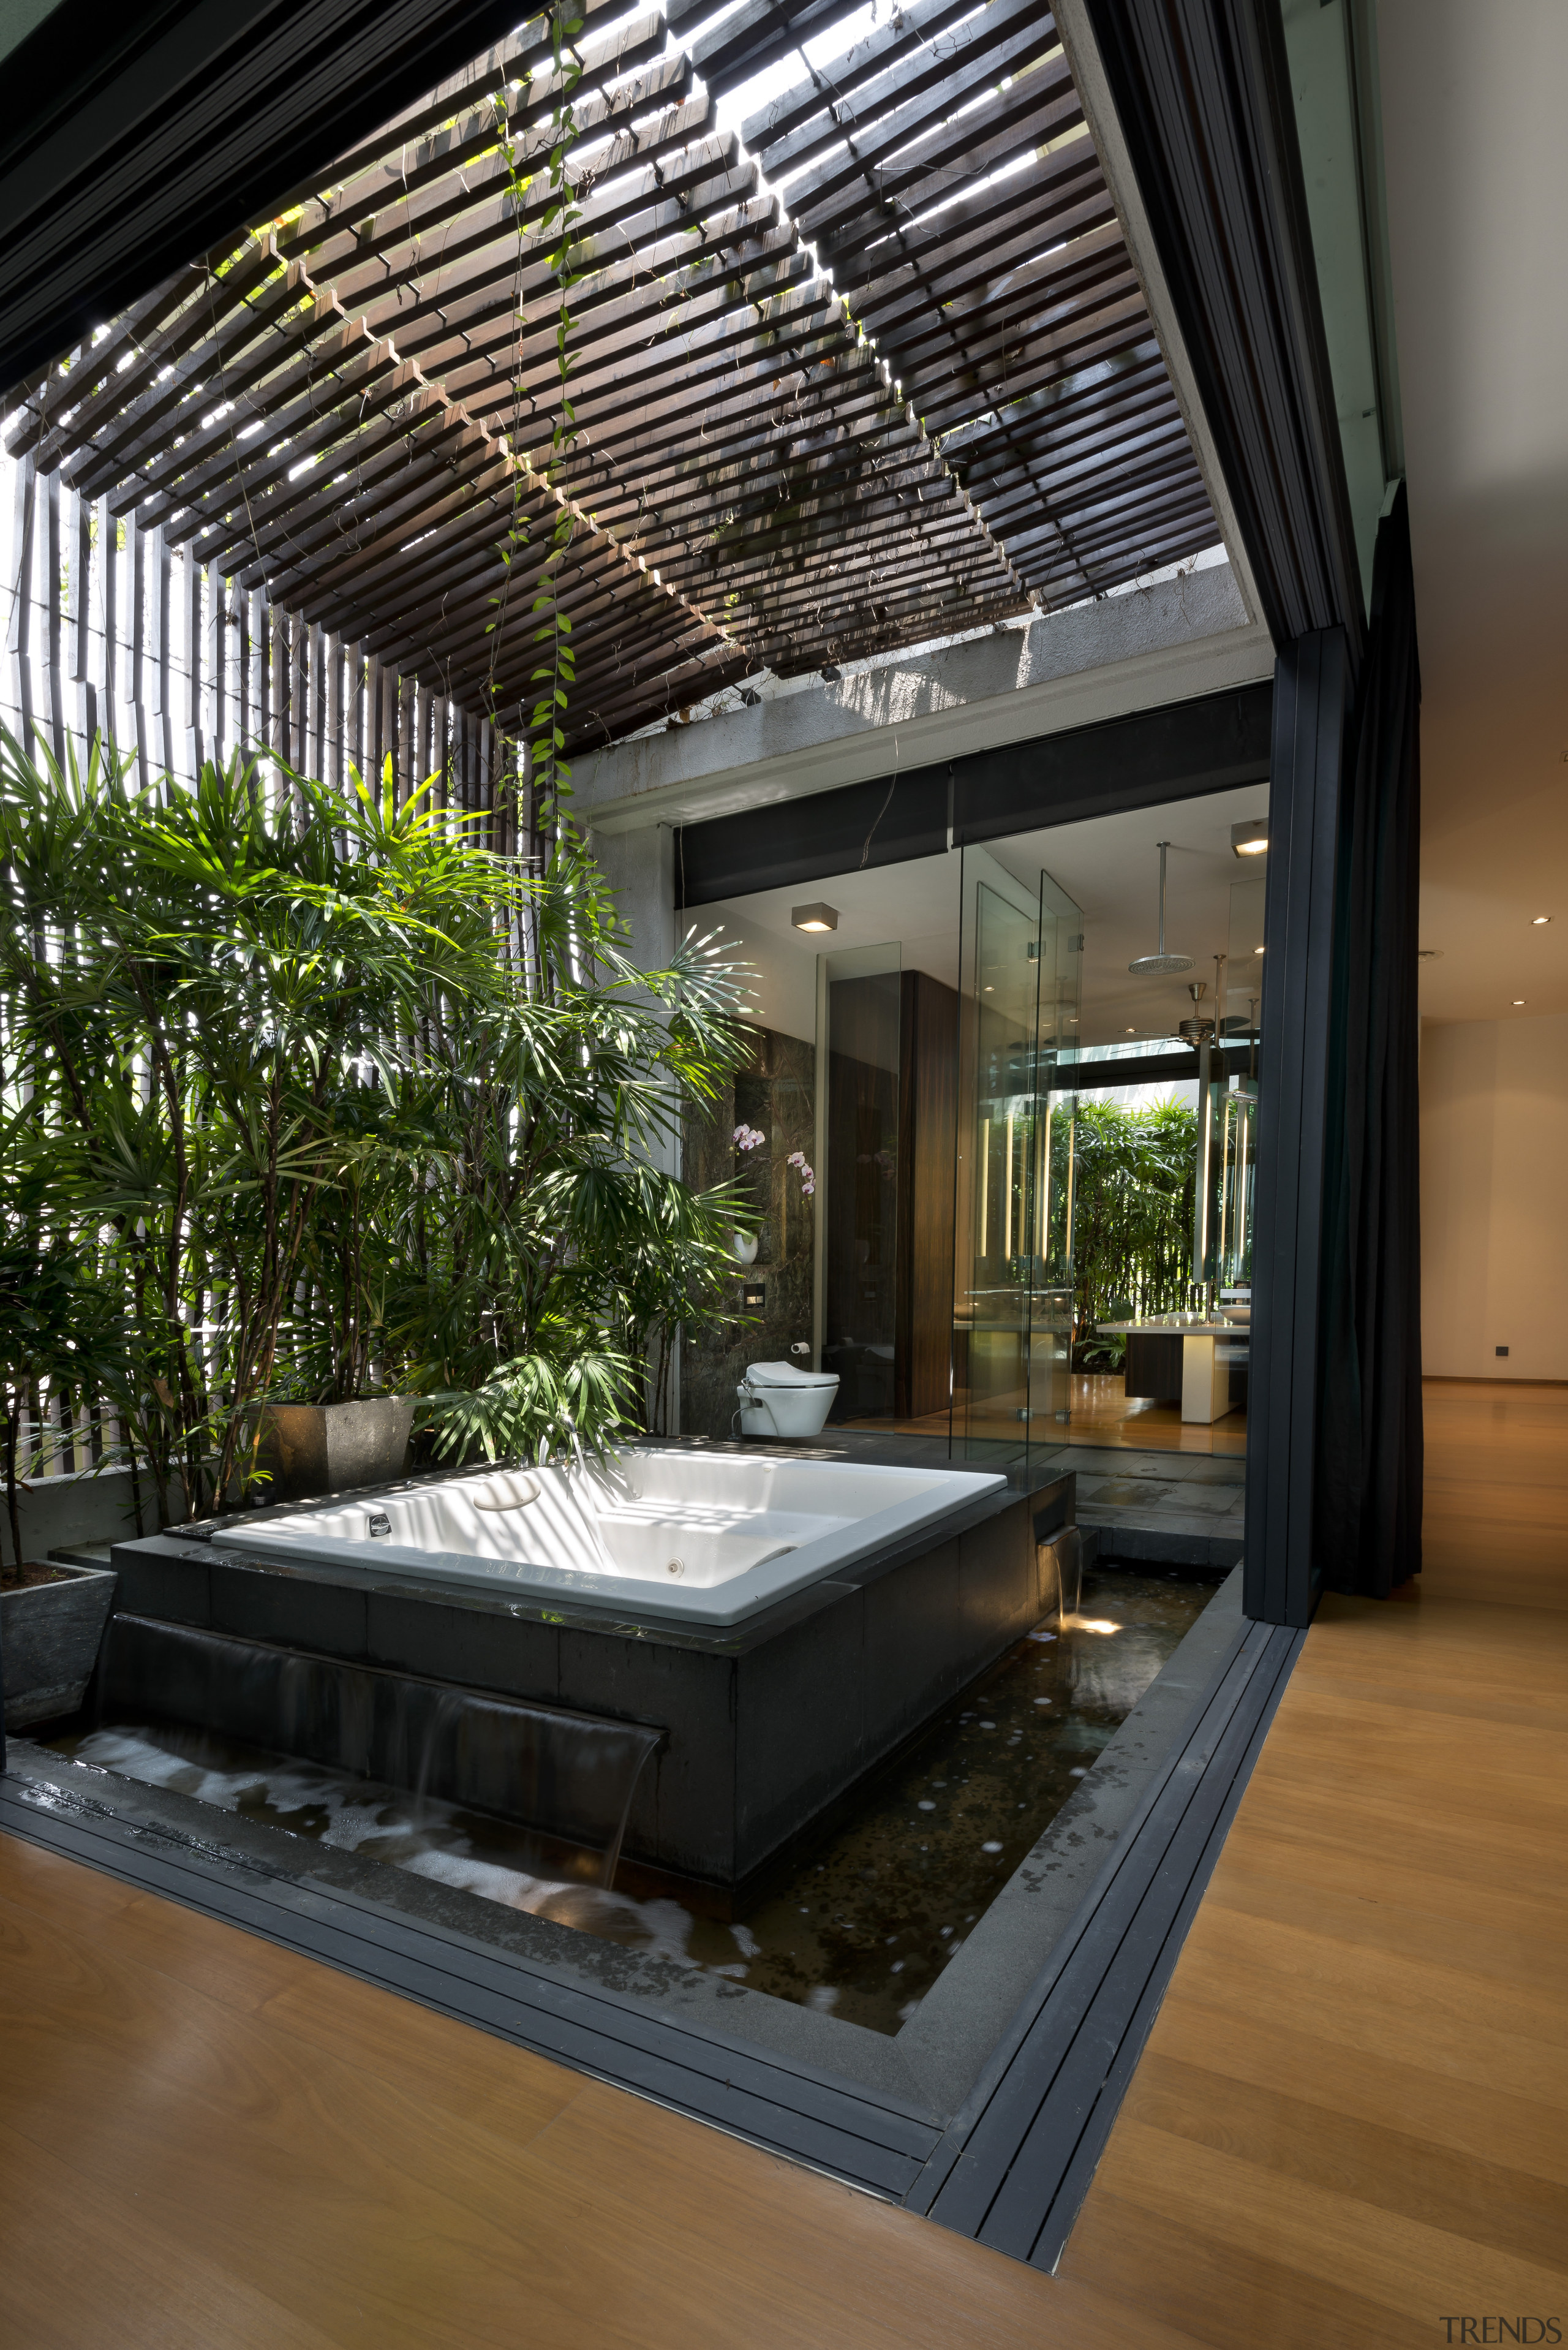 The master suite on the top level of architecture, ceiling, condominium, courtyard, daylighting, estate, home, house, interior design, lobby, real estate, black, brown